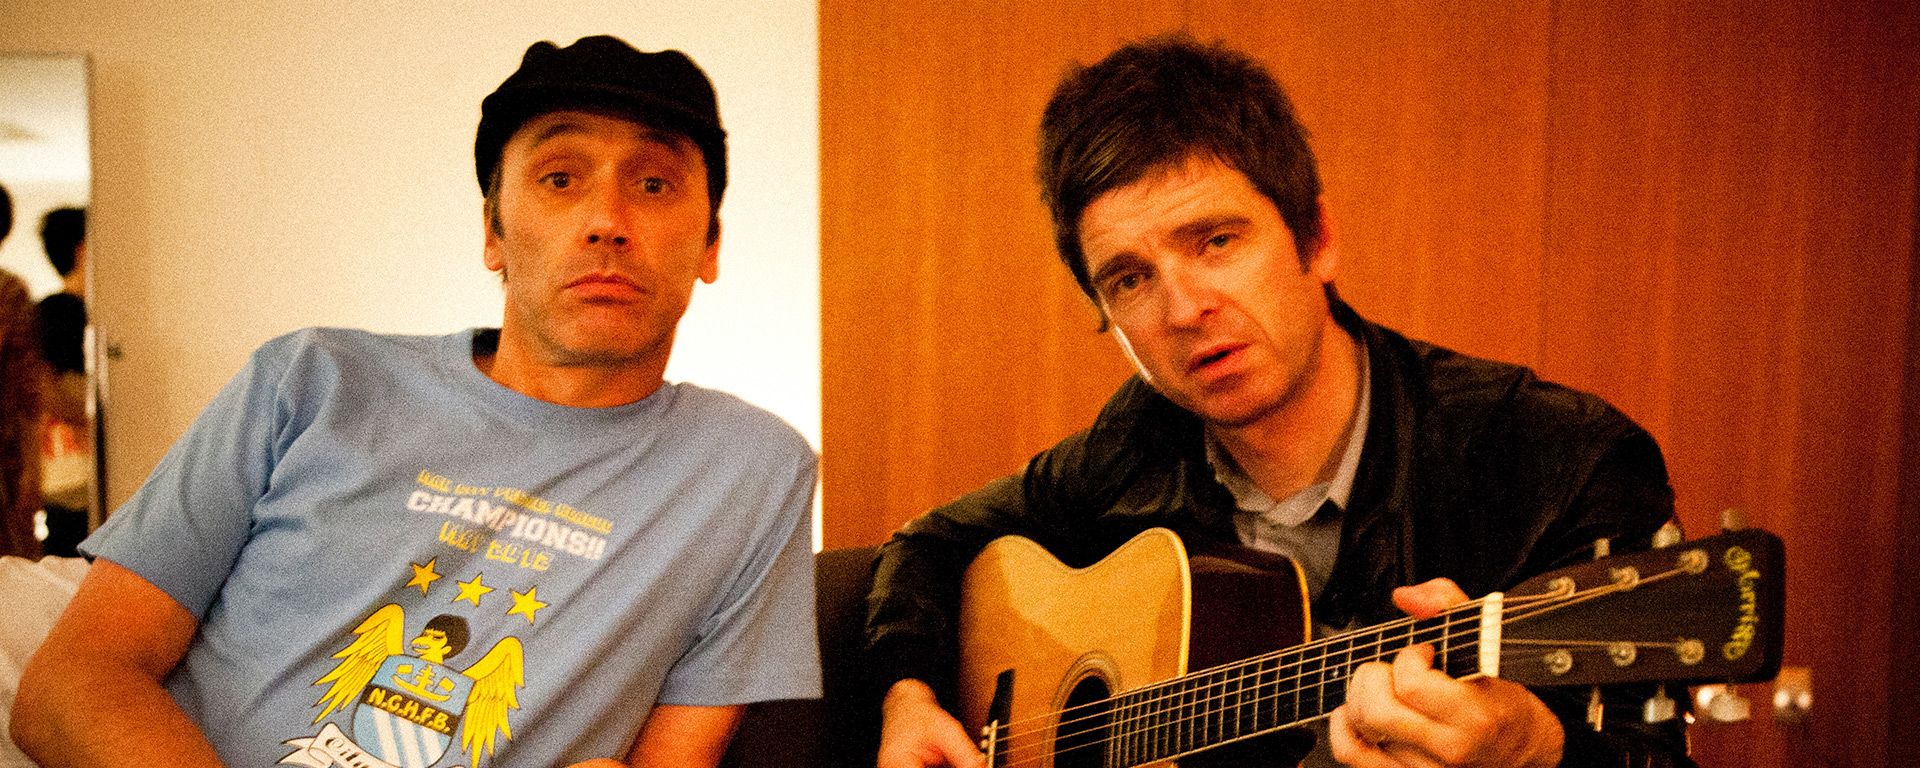 Phil Smith and Noel Gallagher